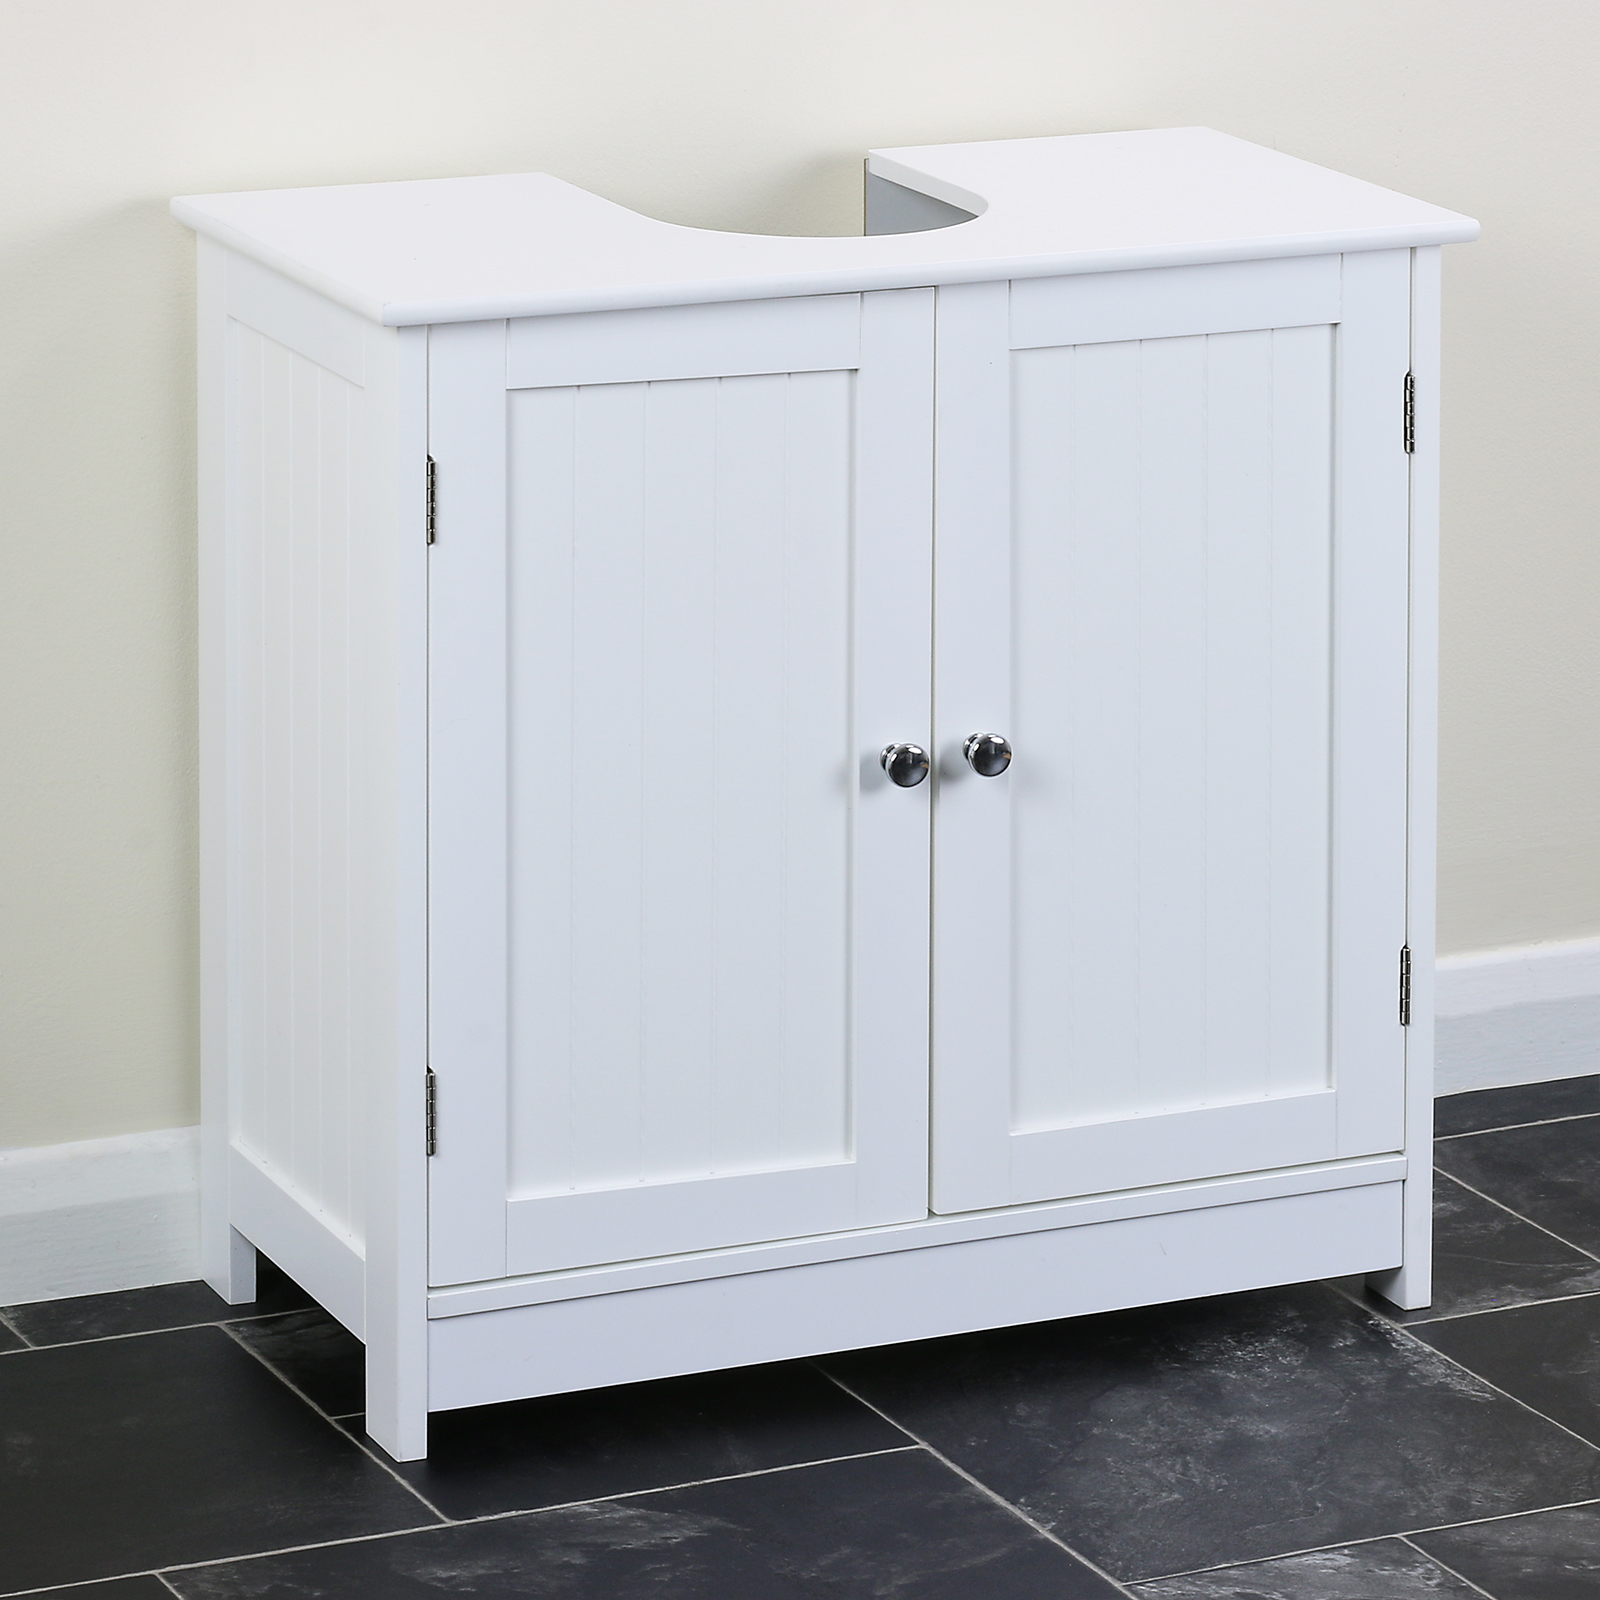 Sentinel Clic White Under Sink Storage Vanity Unit Bathroom Cupboard With Cut Out